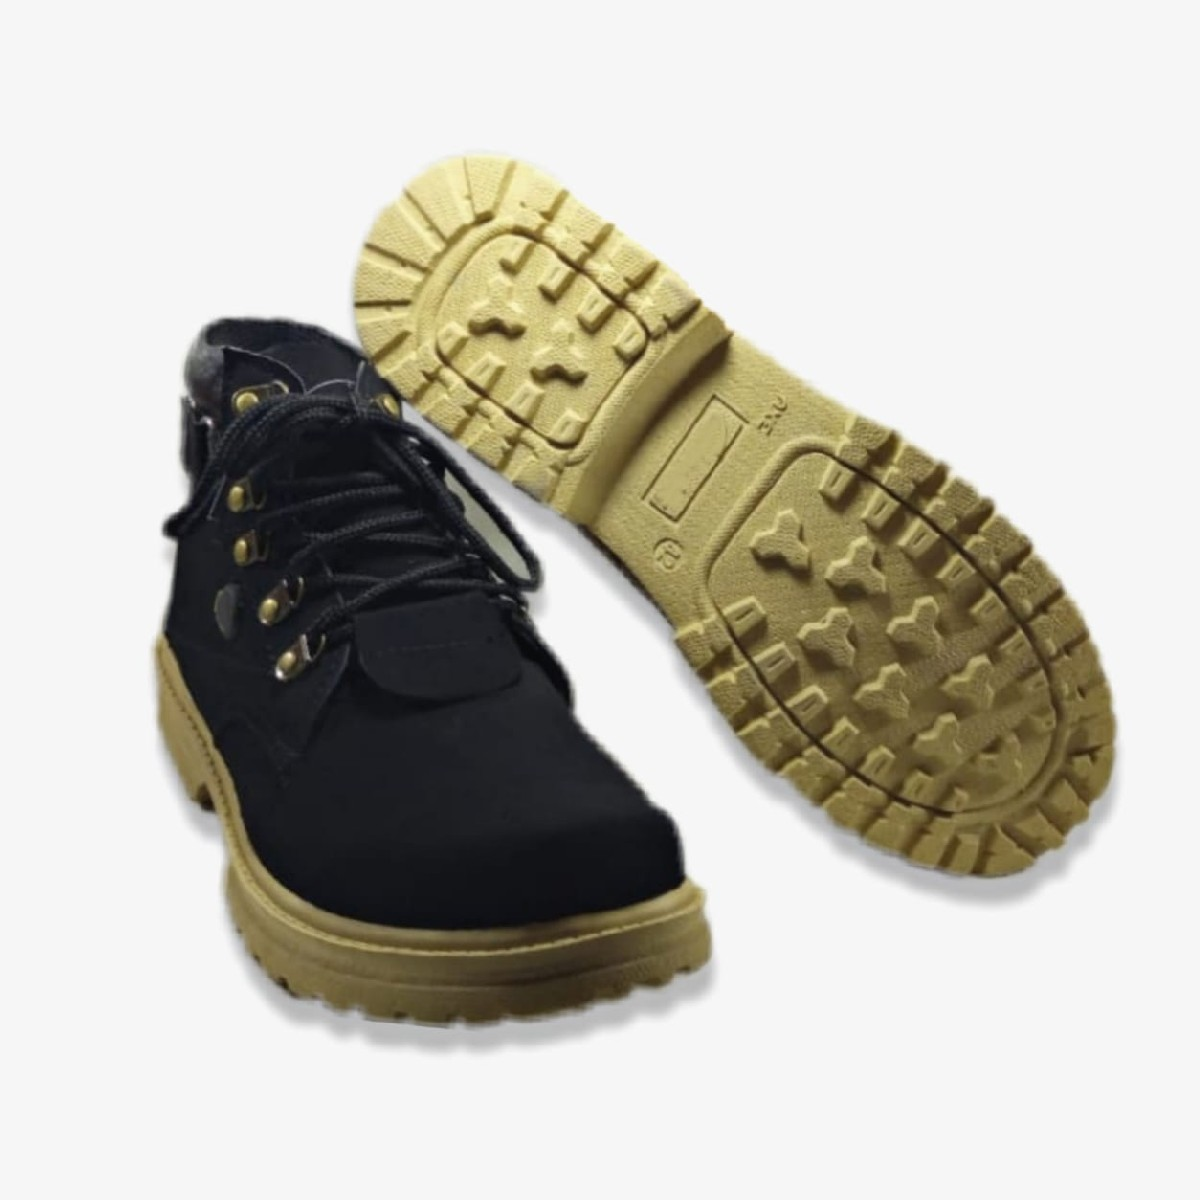 (MK) - Black Daily Use Long Shoes for Men CTBL002